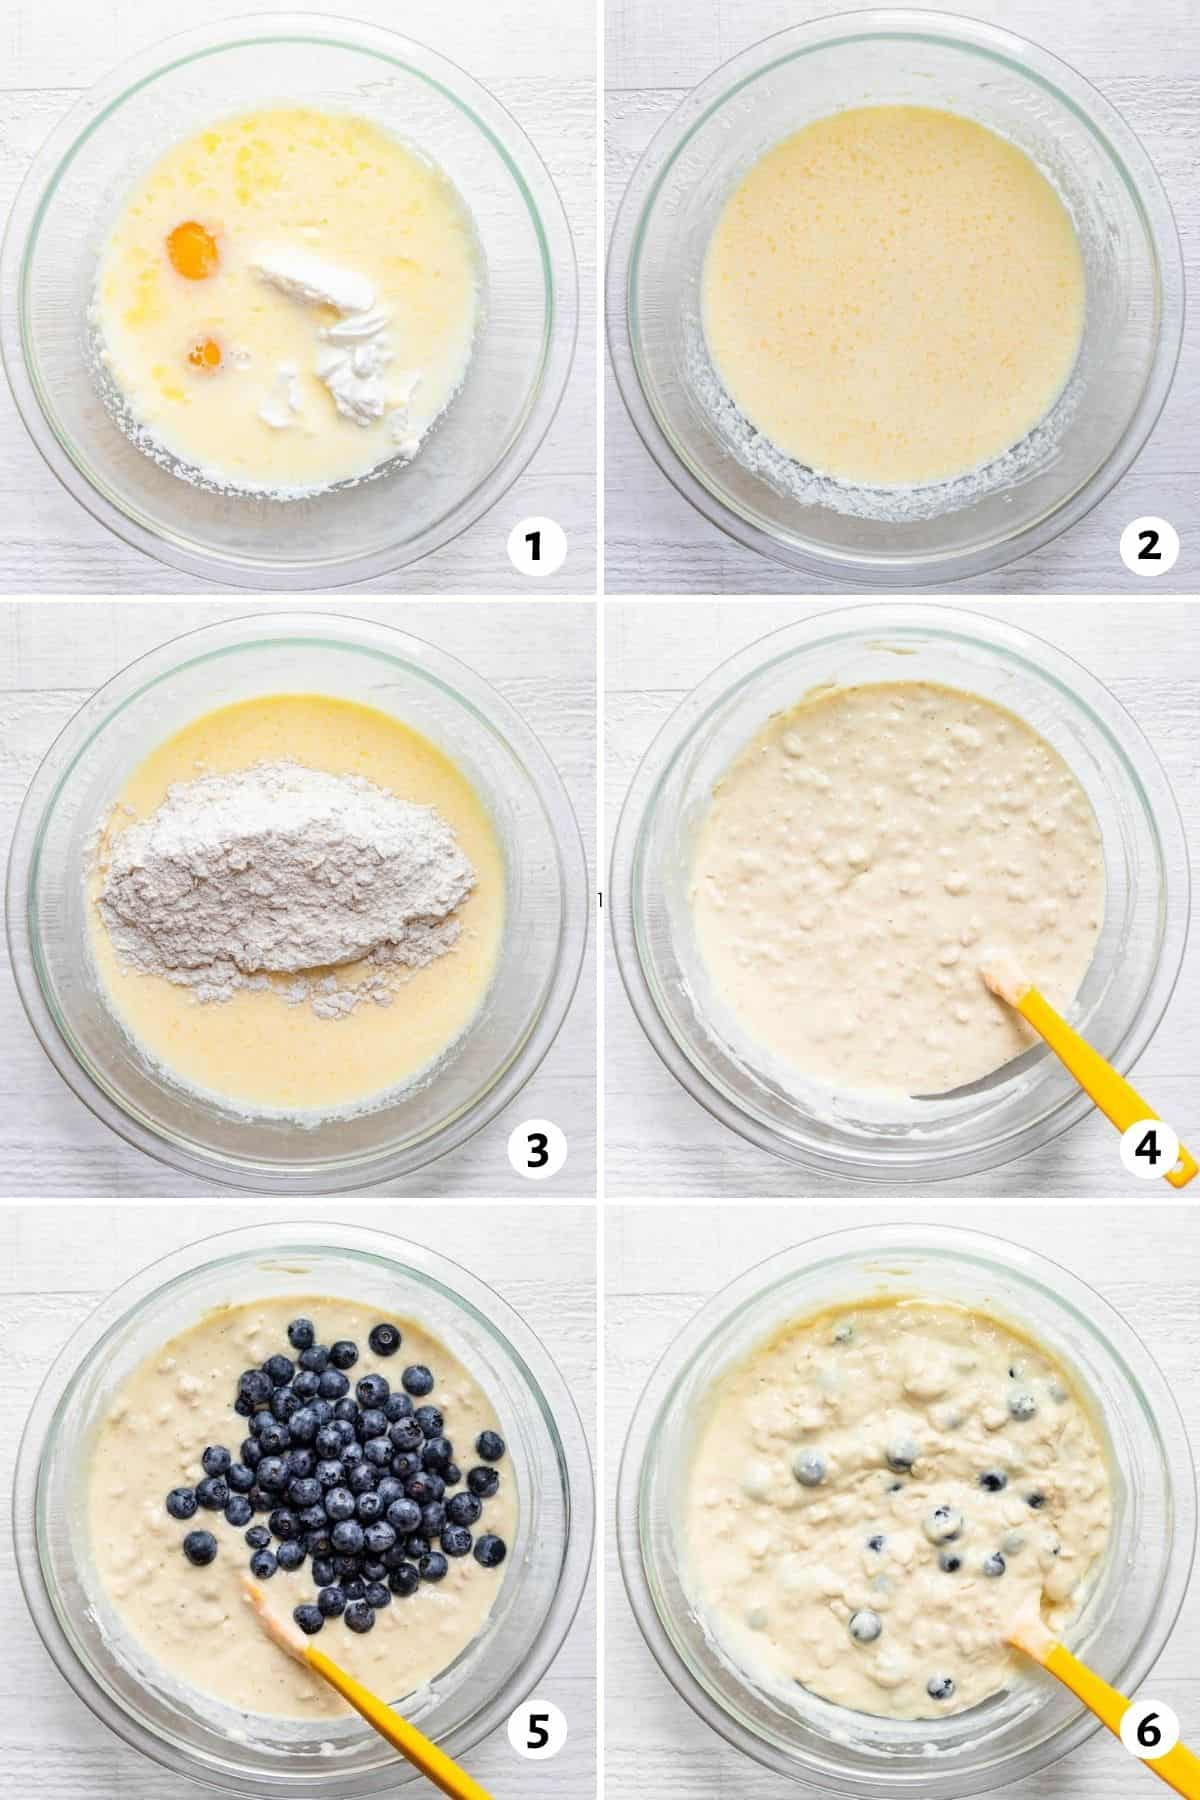 Step by step instructions for how to make the pancakes